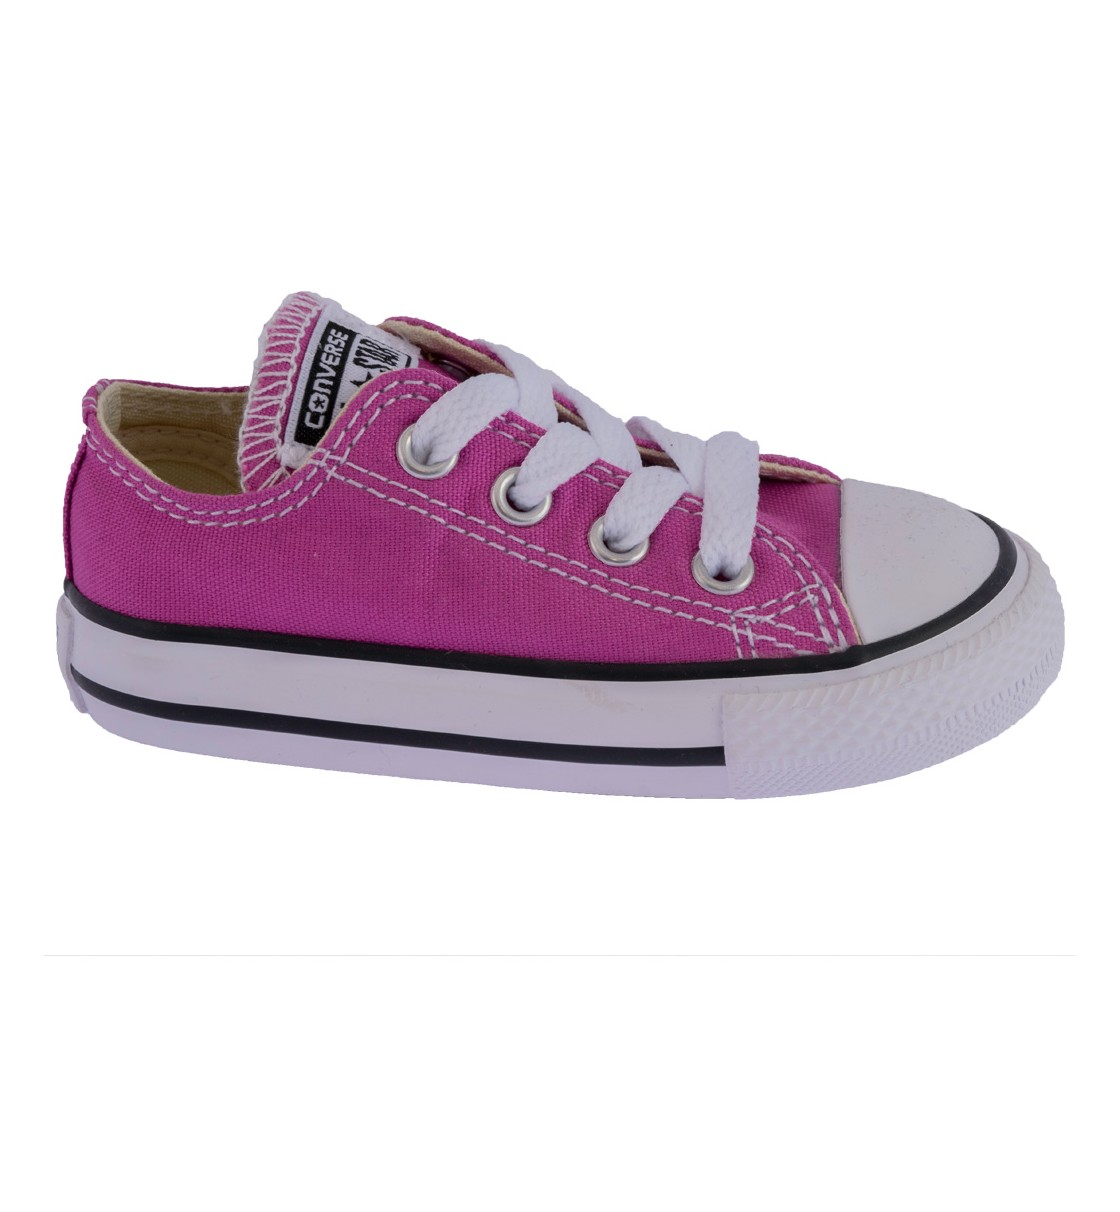 Converse Bebe Παπούτσι Μόδας Chuck Taylor All Star OX 751874C